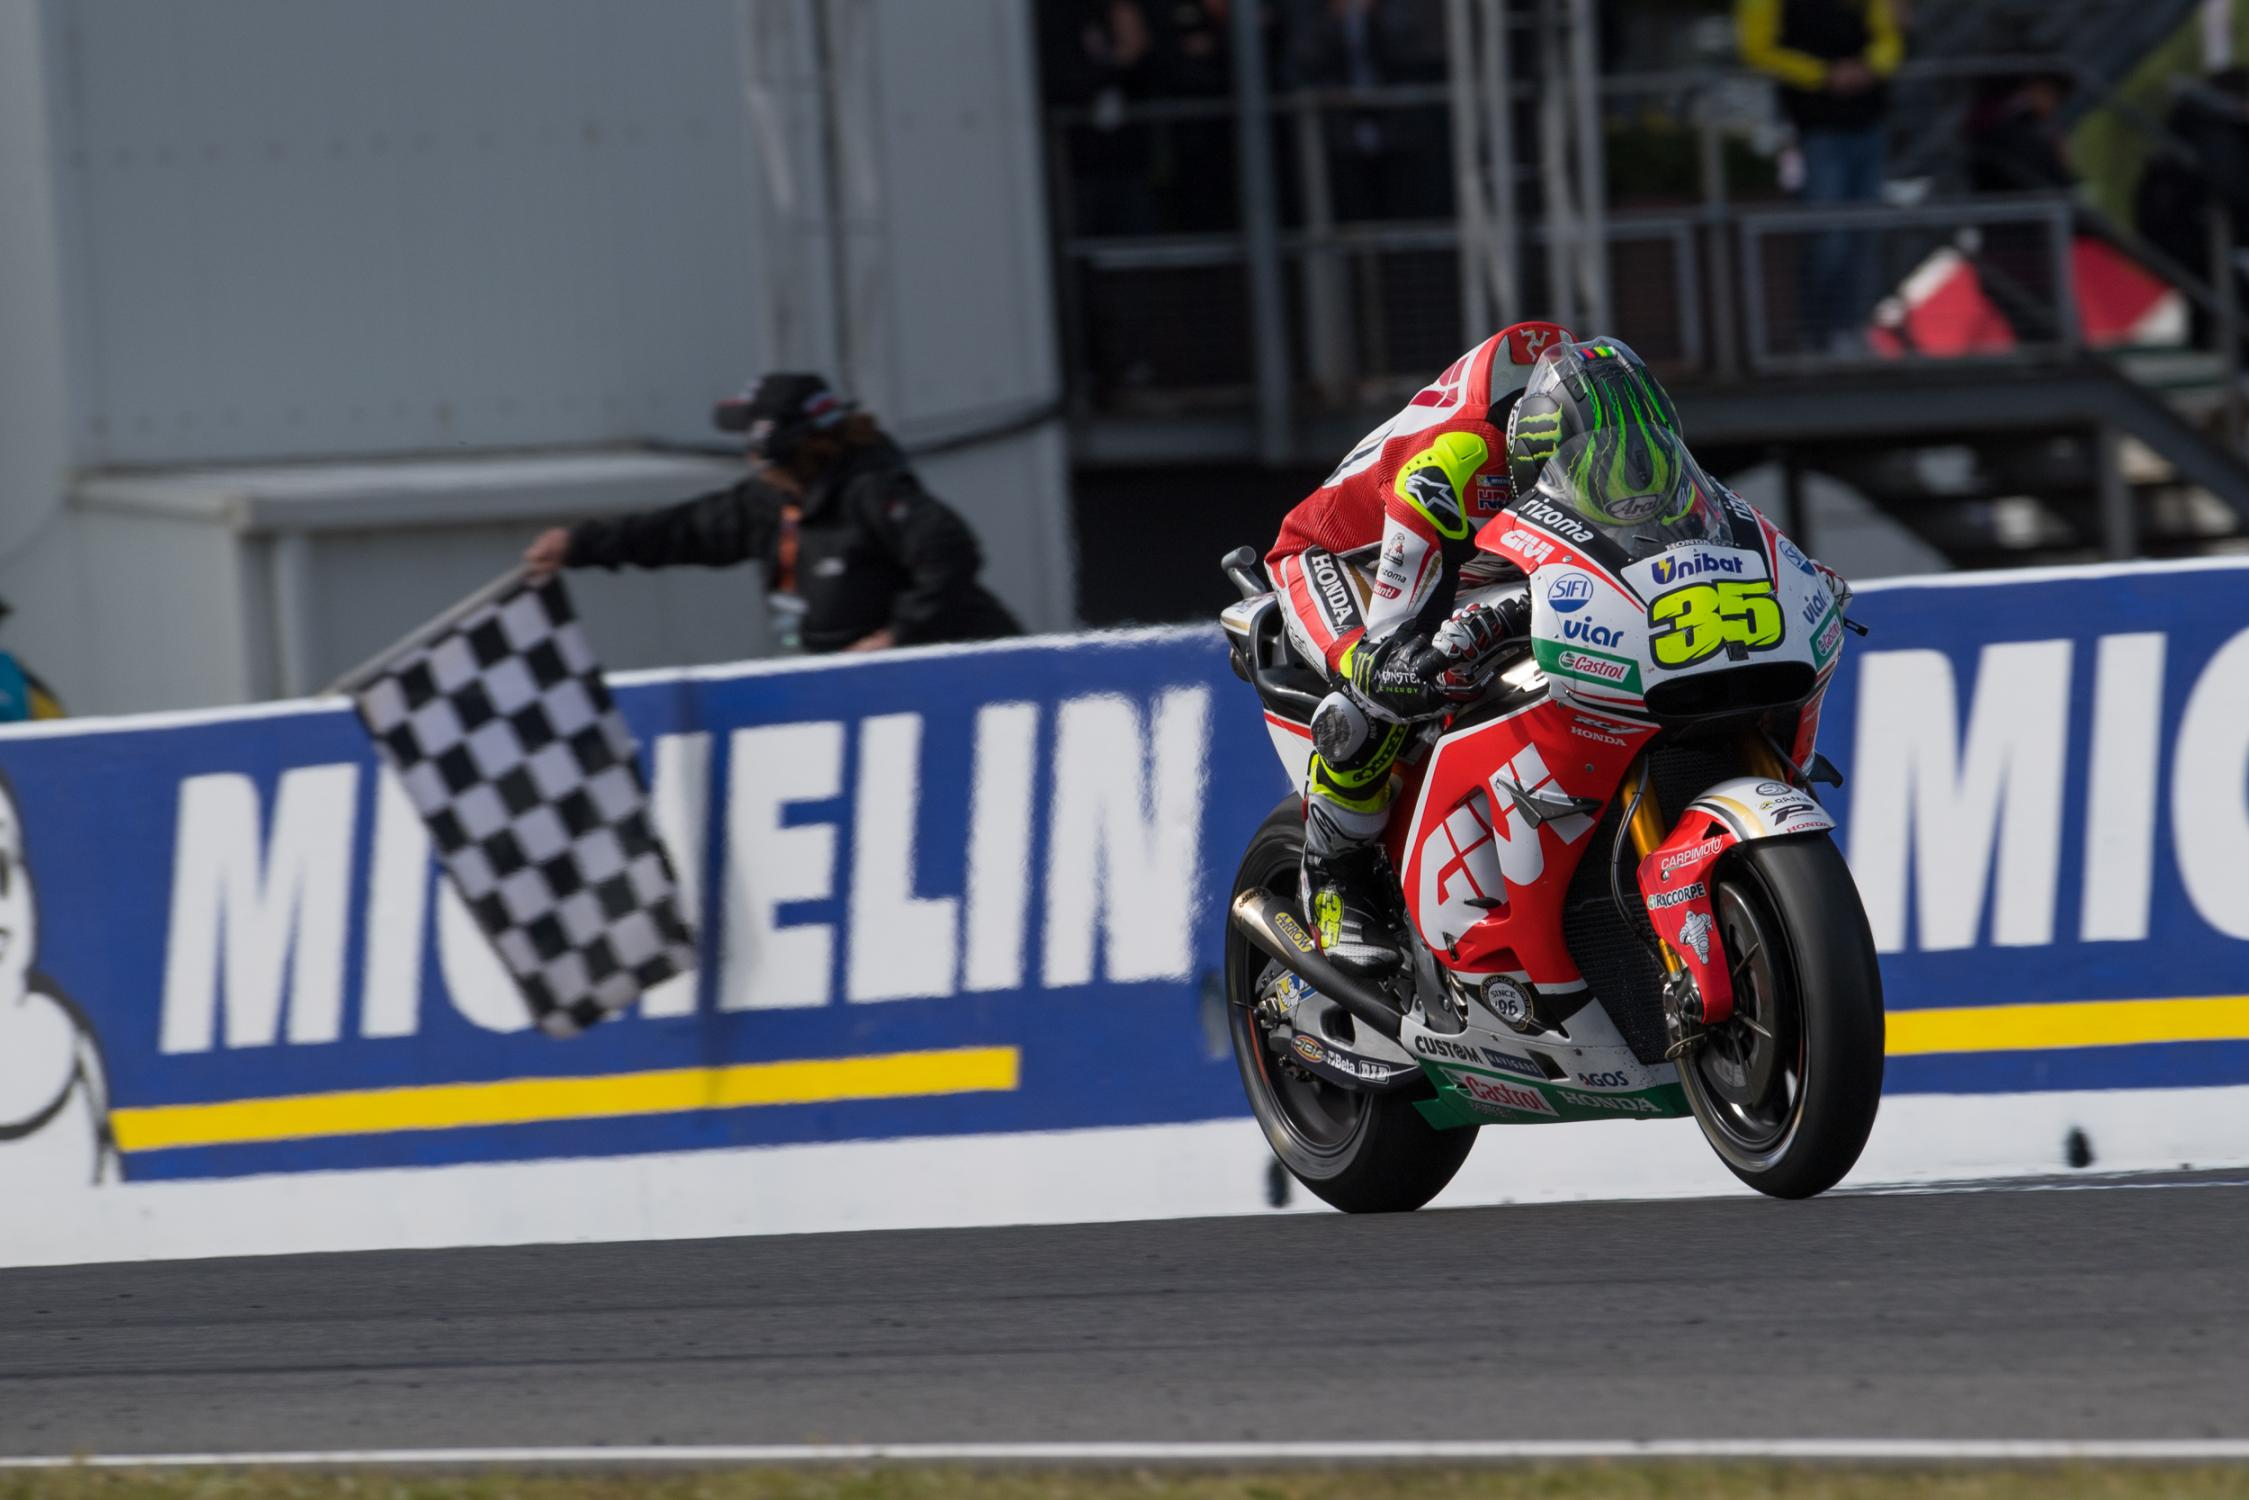 [GP] Philip Island 35-cal-crutchlow-englg5_4525.gallery_full_top_fullscreen